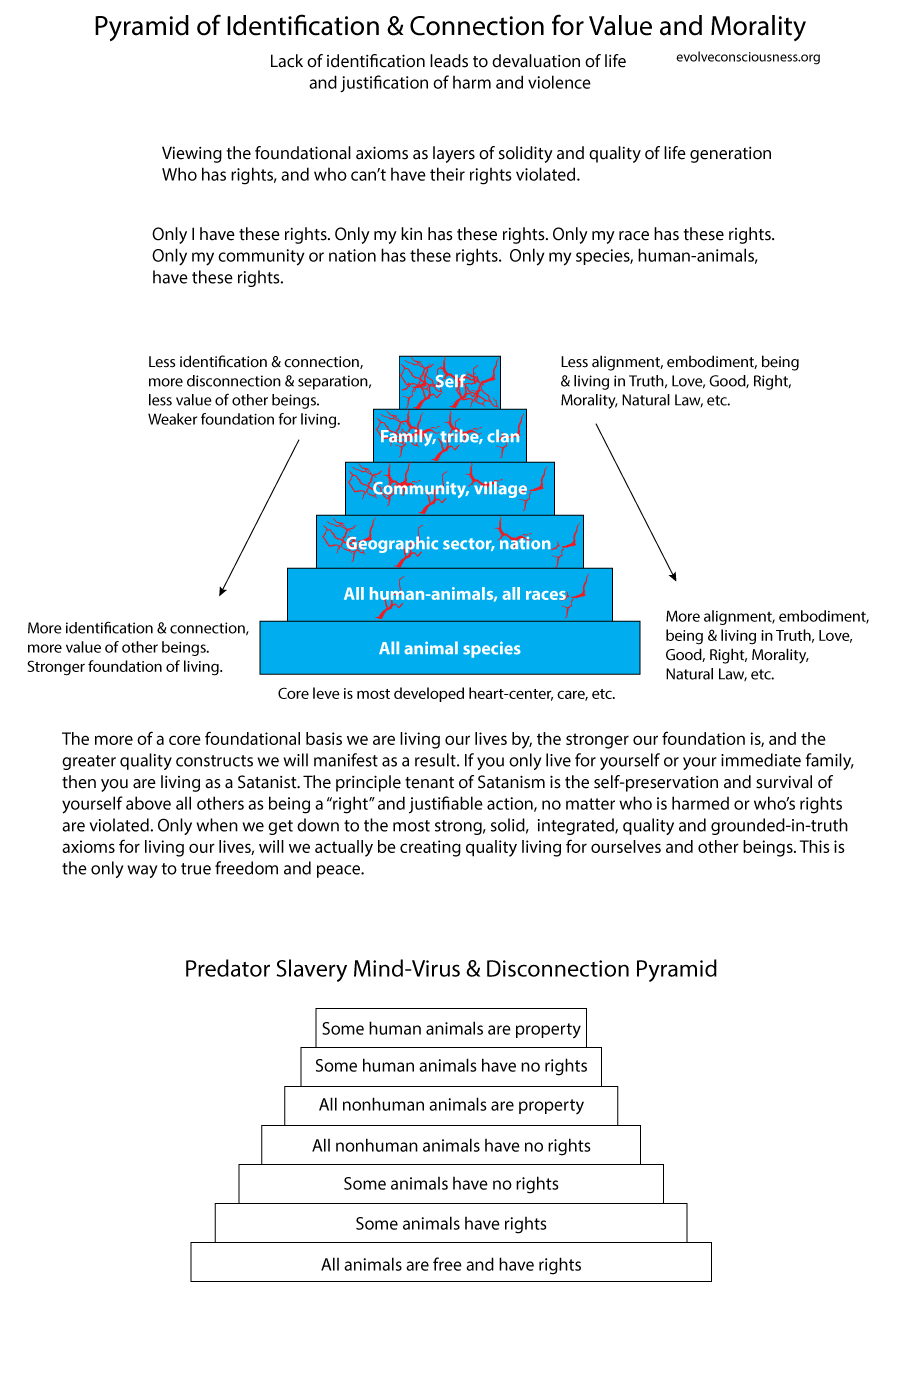 Kind, Kin, Genus and Care NL6-Examples-1-Pyramid-Identification-and-Value